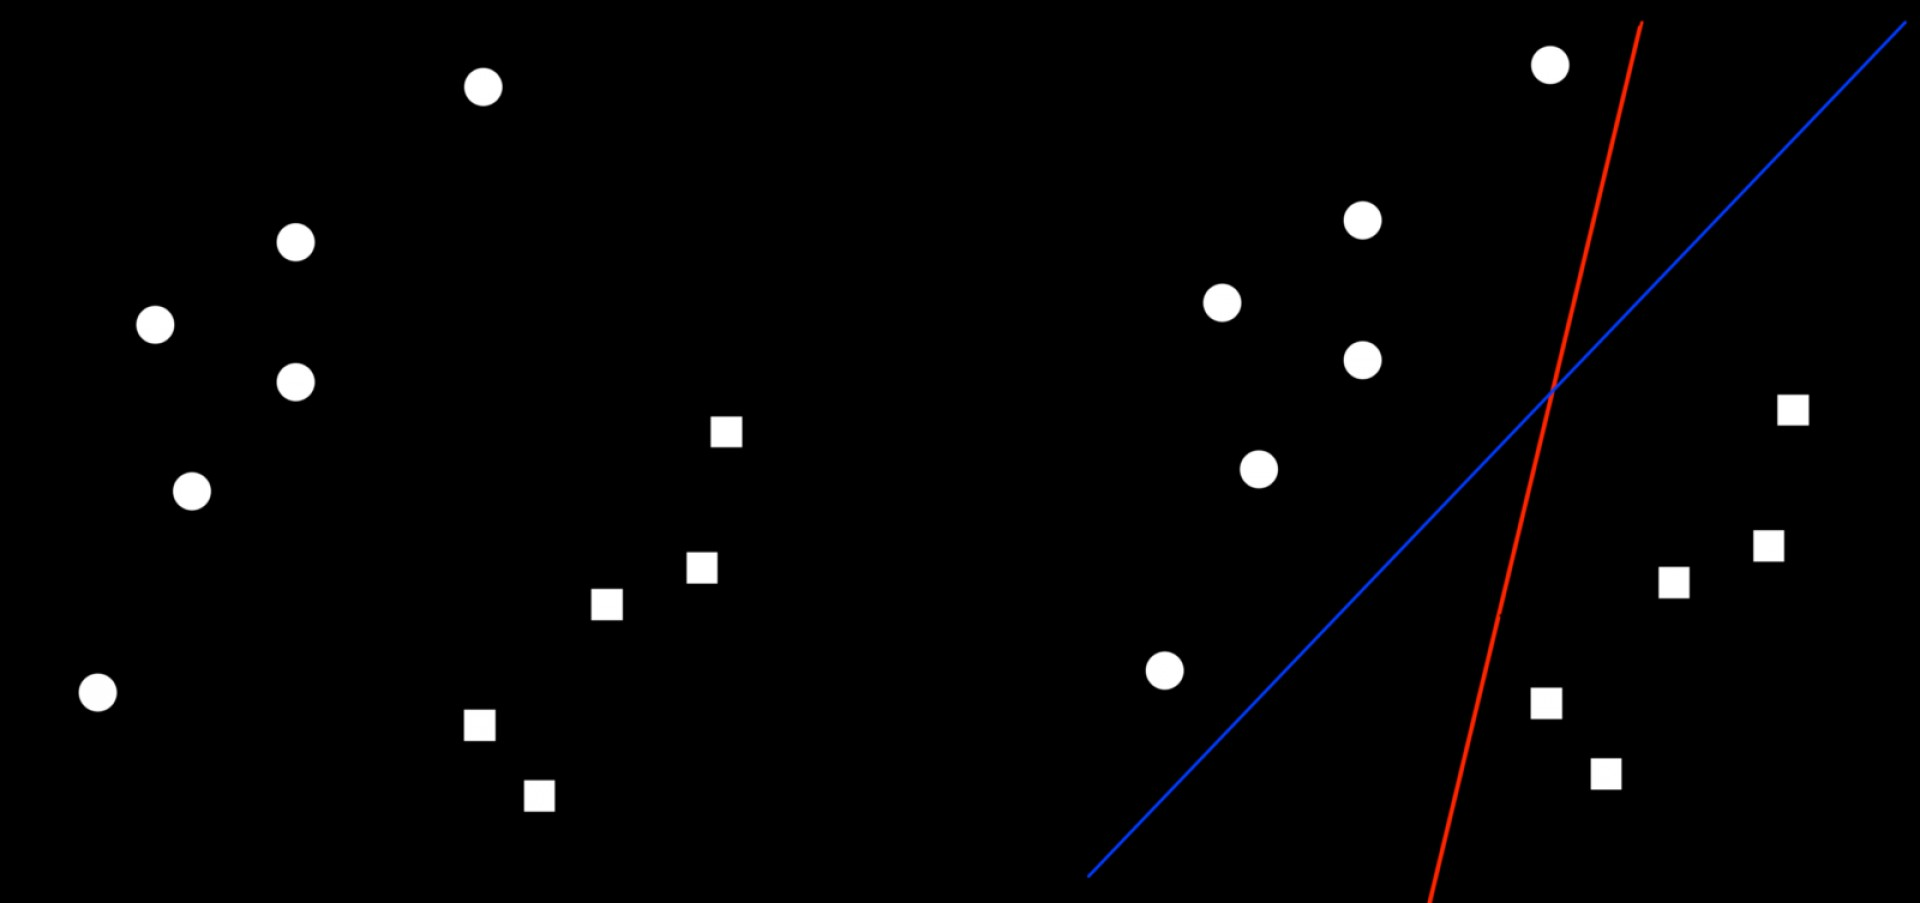 A Normal Line Of Vector: Support Vector Machines From Scratch Part Intuition Ceaacb